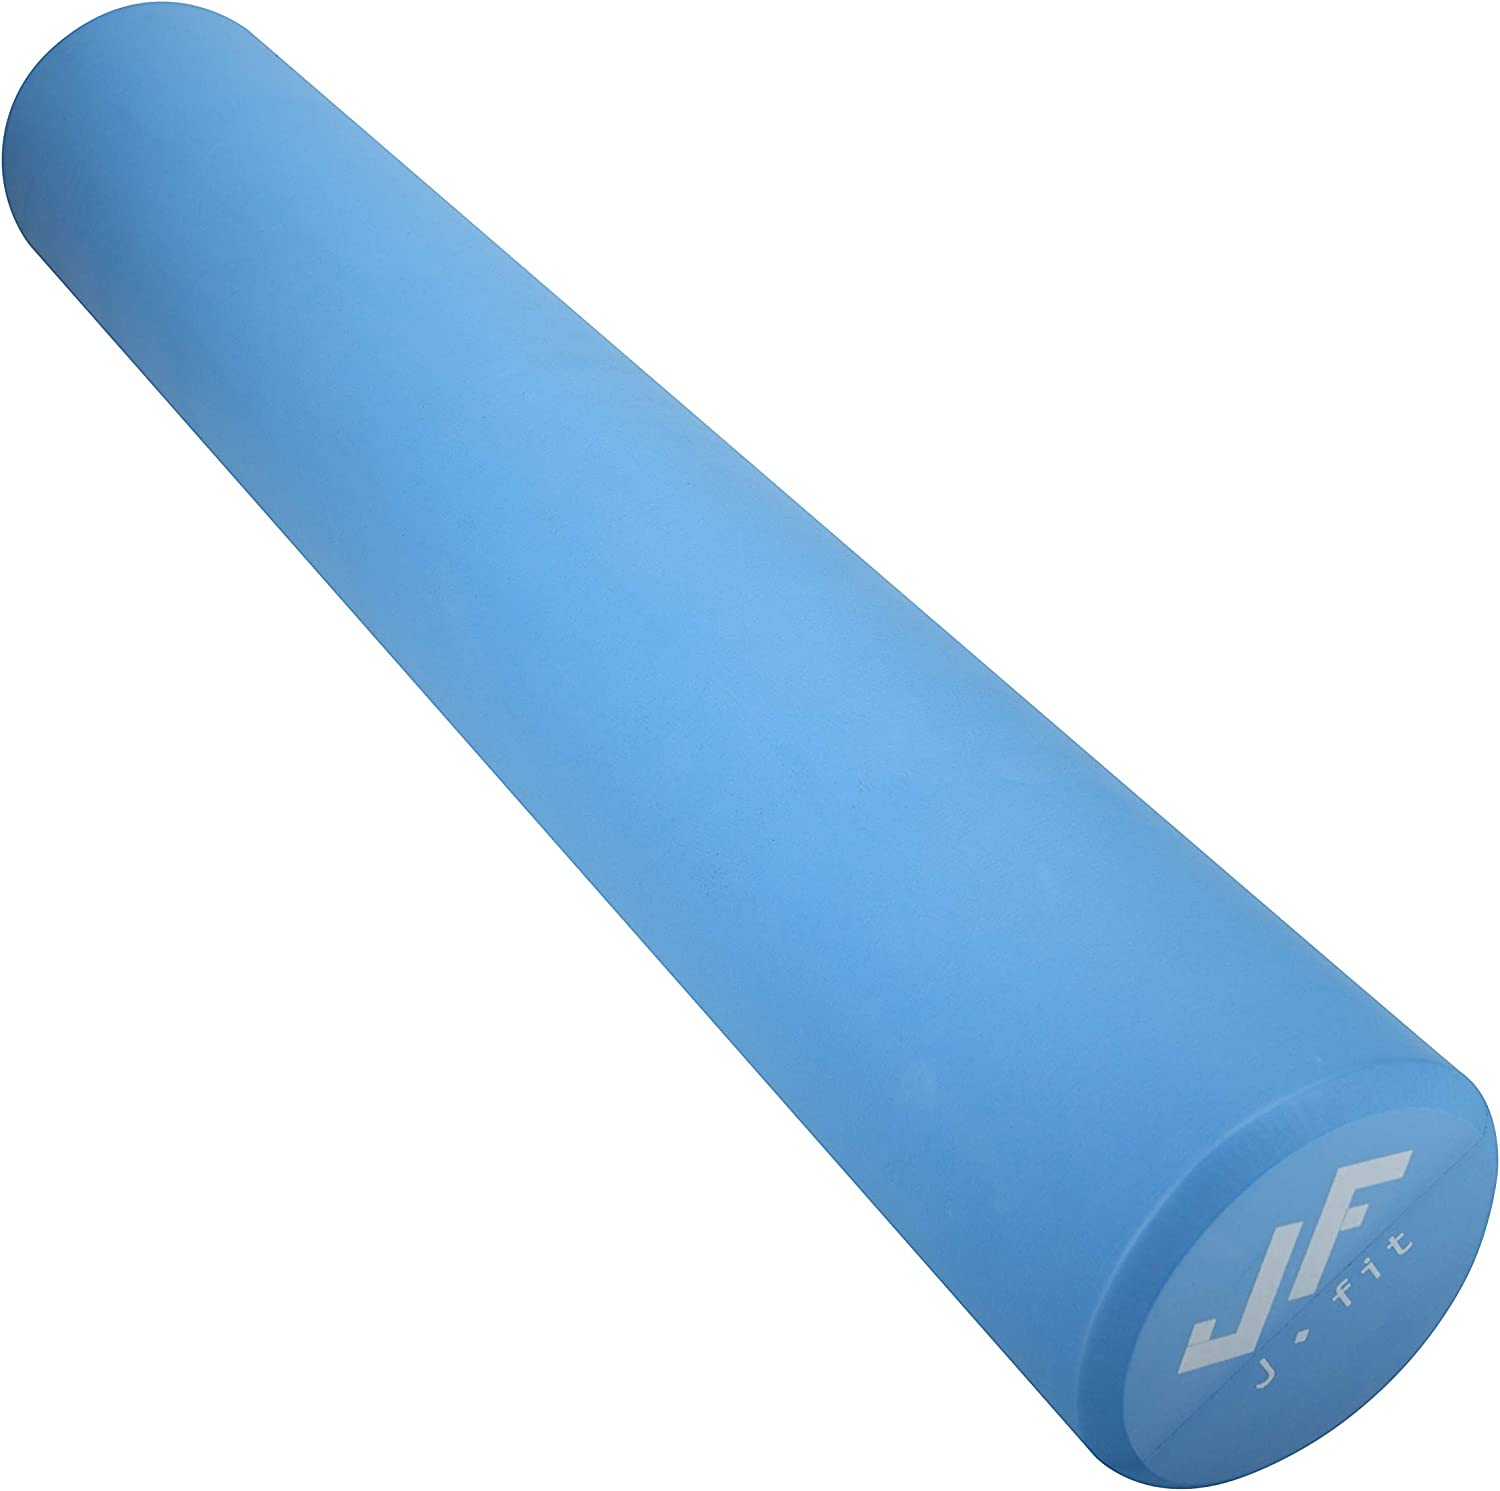 Muscle Roller Foam for Physical Therapy and CrossFit Myofasical Release Training 100/% Satisfaction Warranty Included. 6 Sizes Available in Half and Full Round Ideal Massaging Foam Rollers for Muscles and Spine Functional Fitness EVA Foam Roller